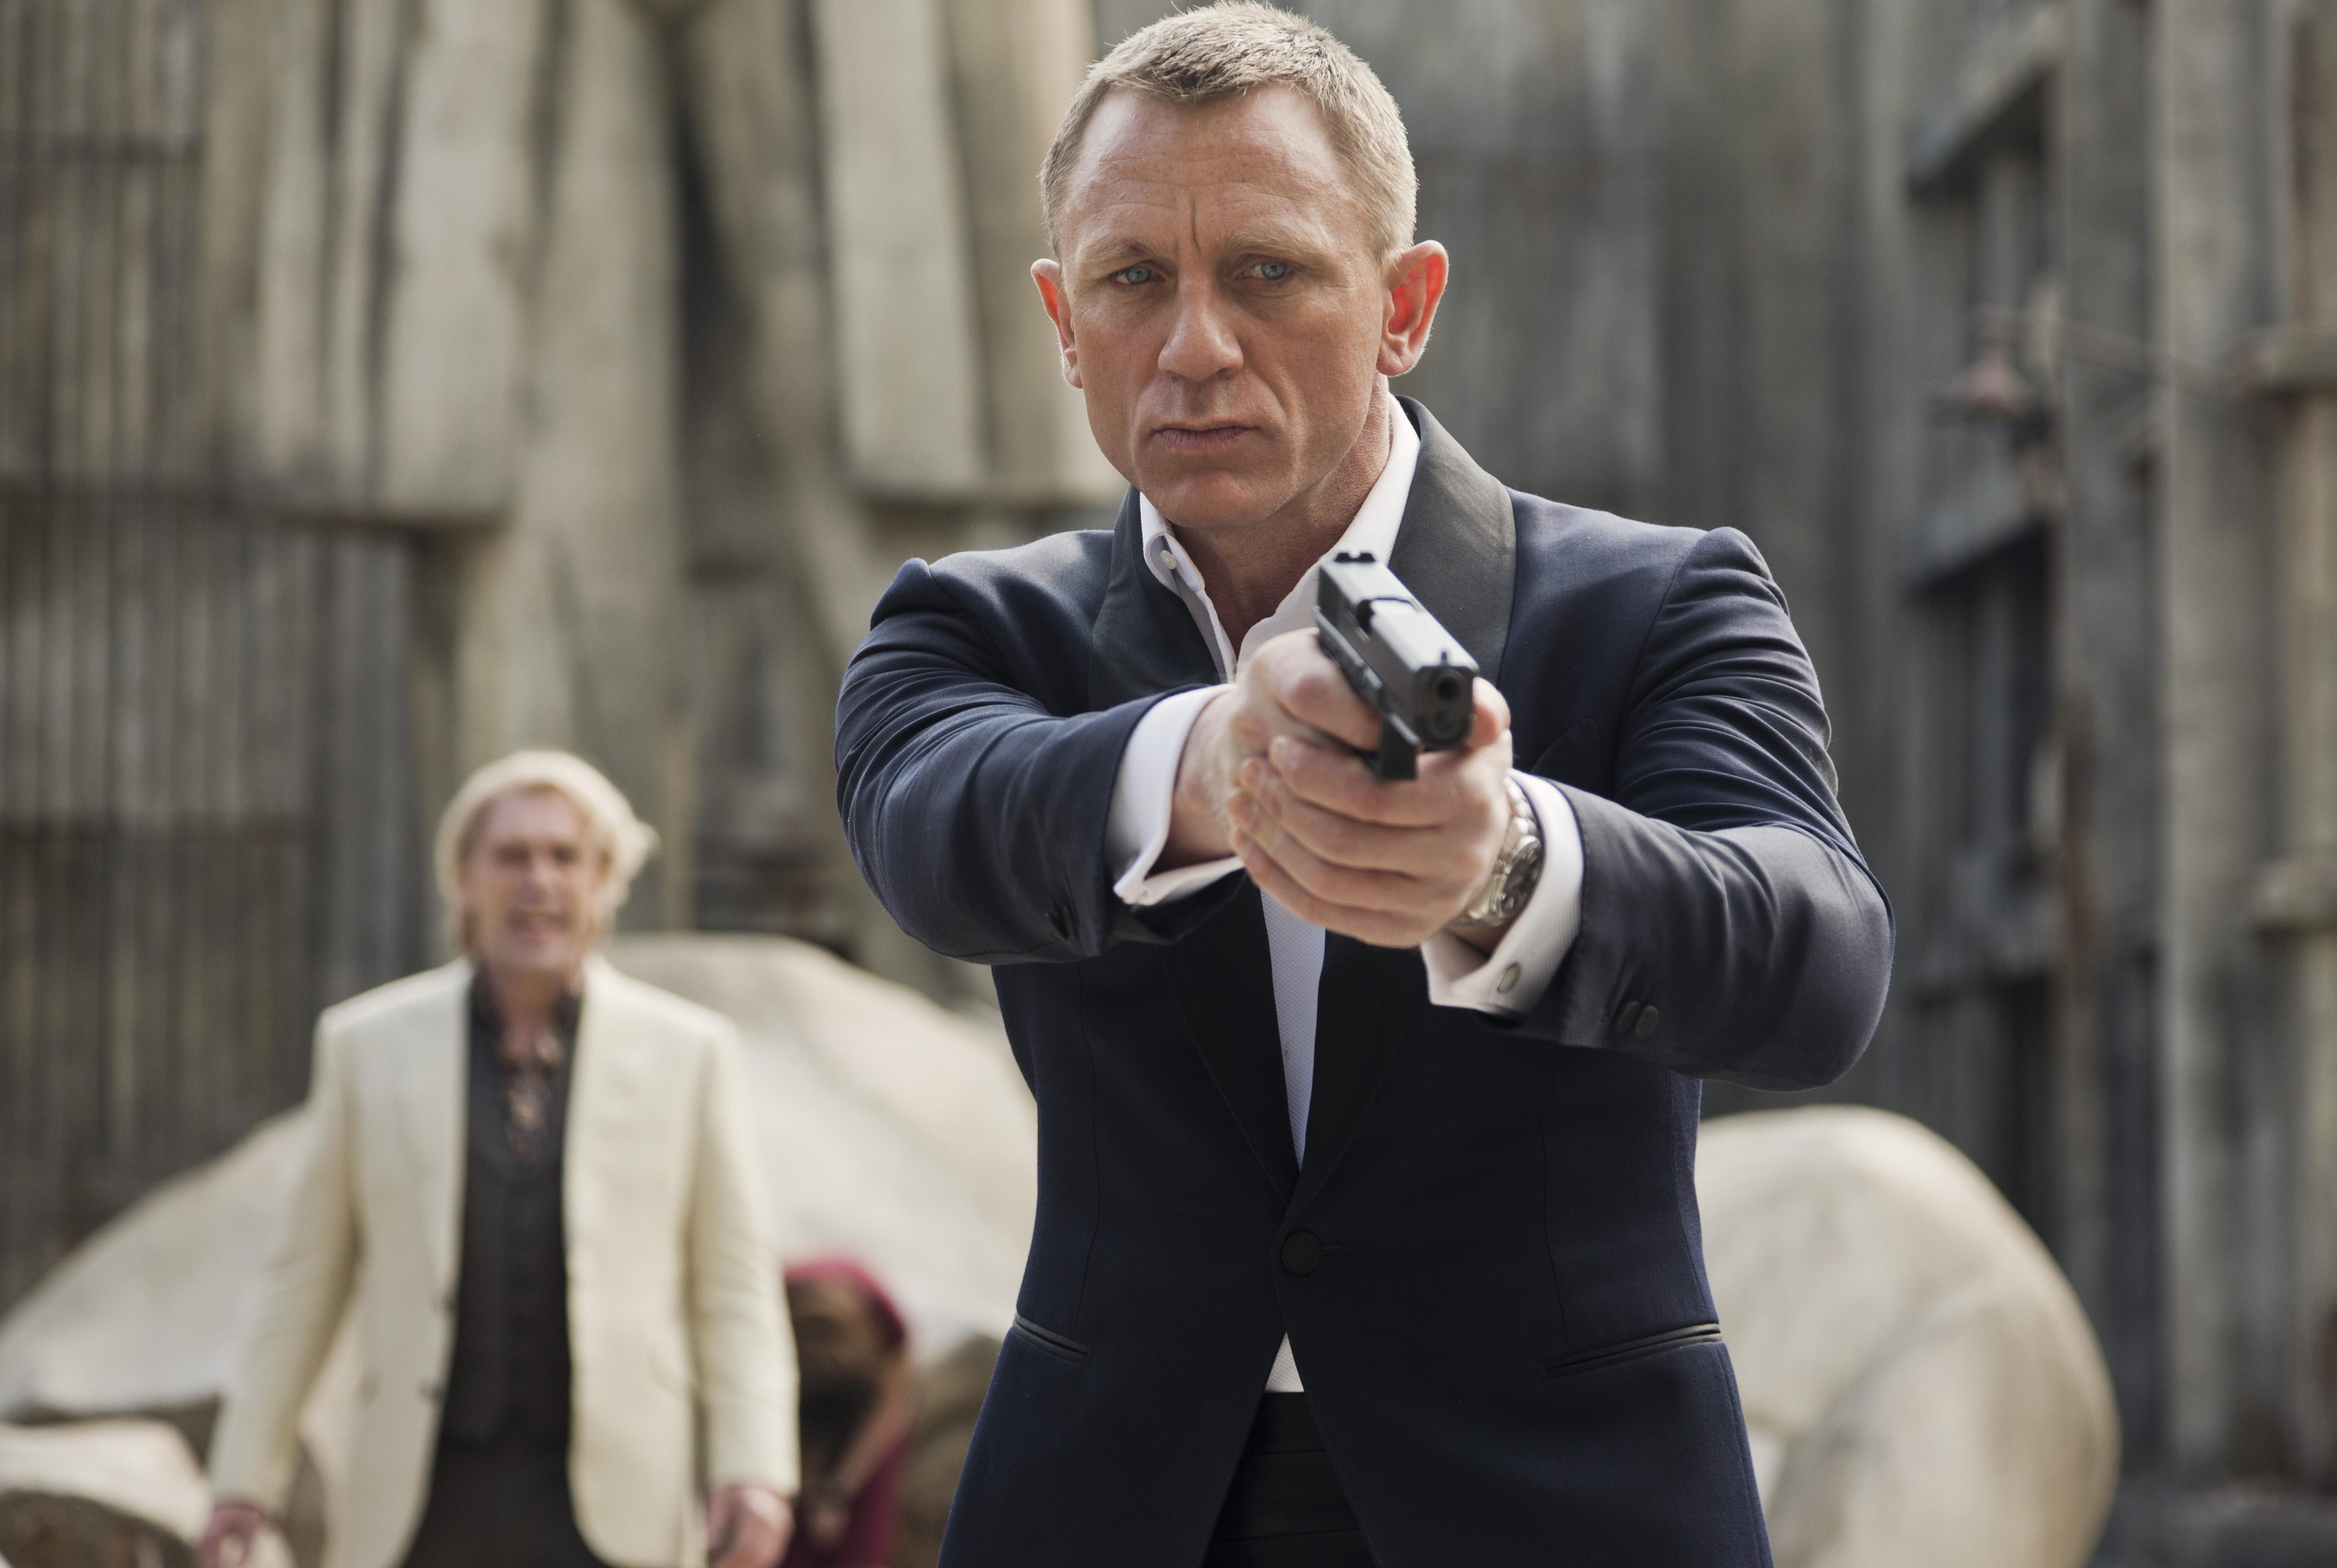 77df3c2bb8aadac33b8fa85868d9fc26 Bond actor Daniel Craig set to play 007 in two more movies despite nearly quitting the role